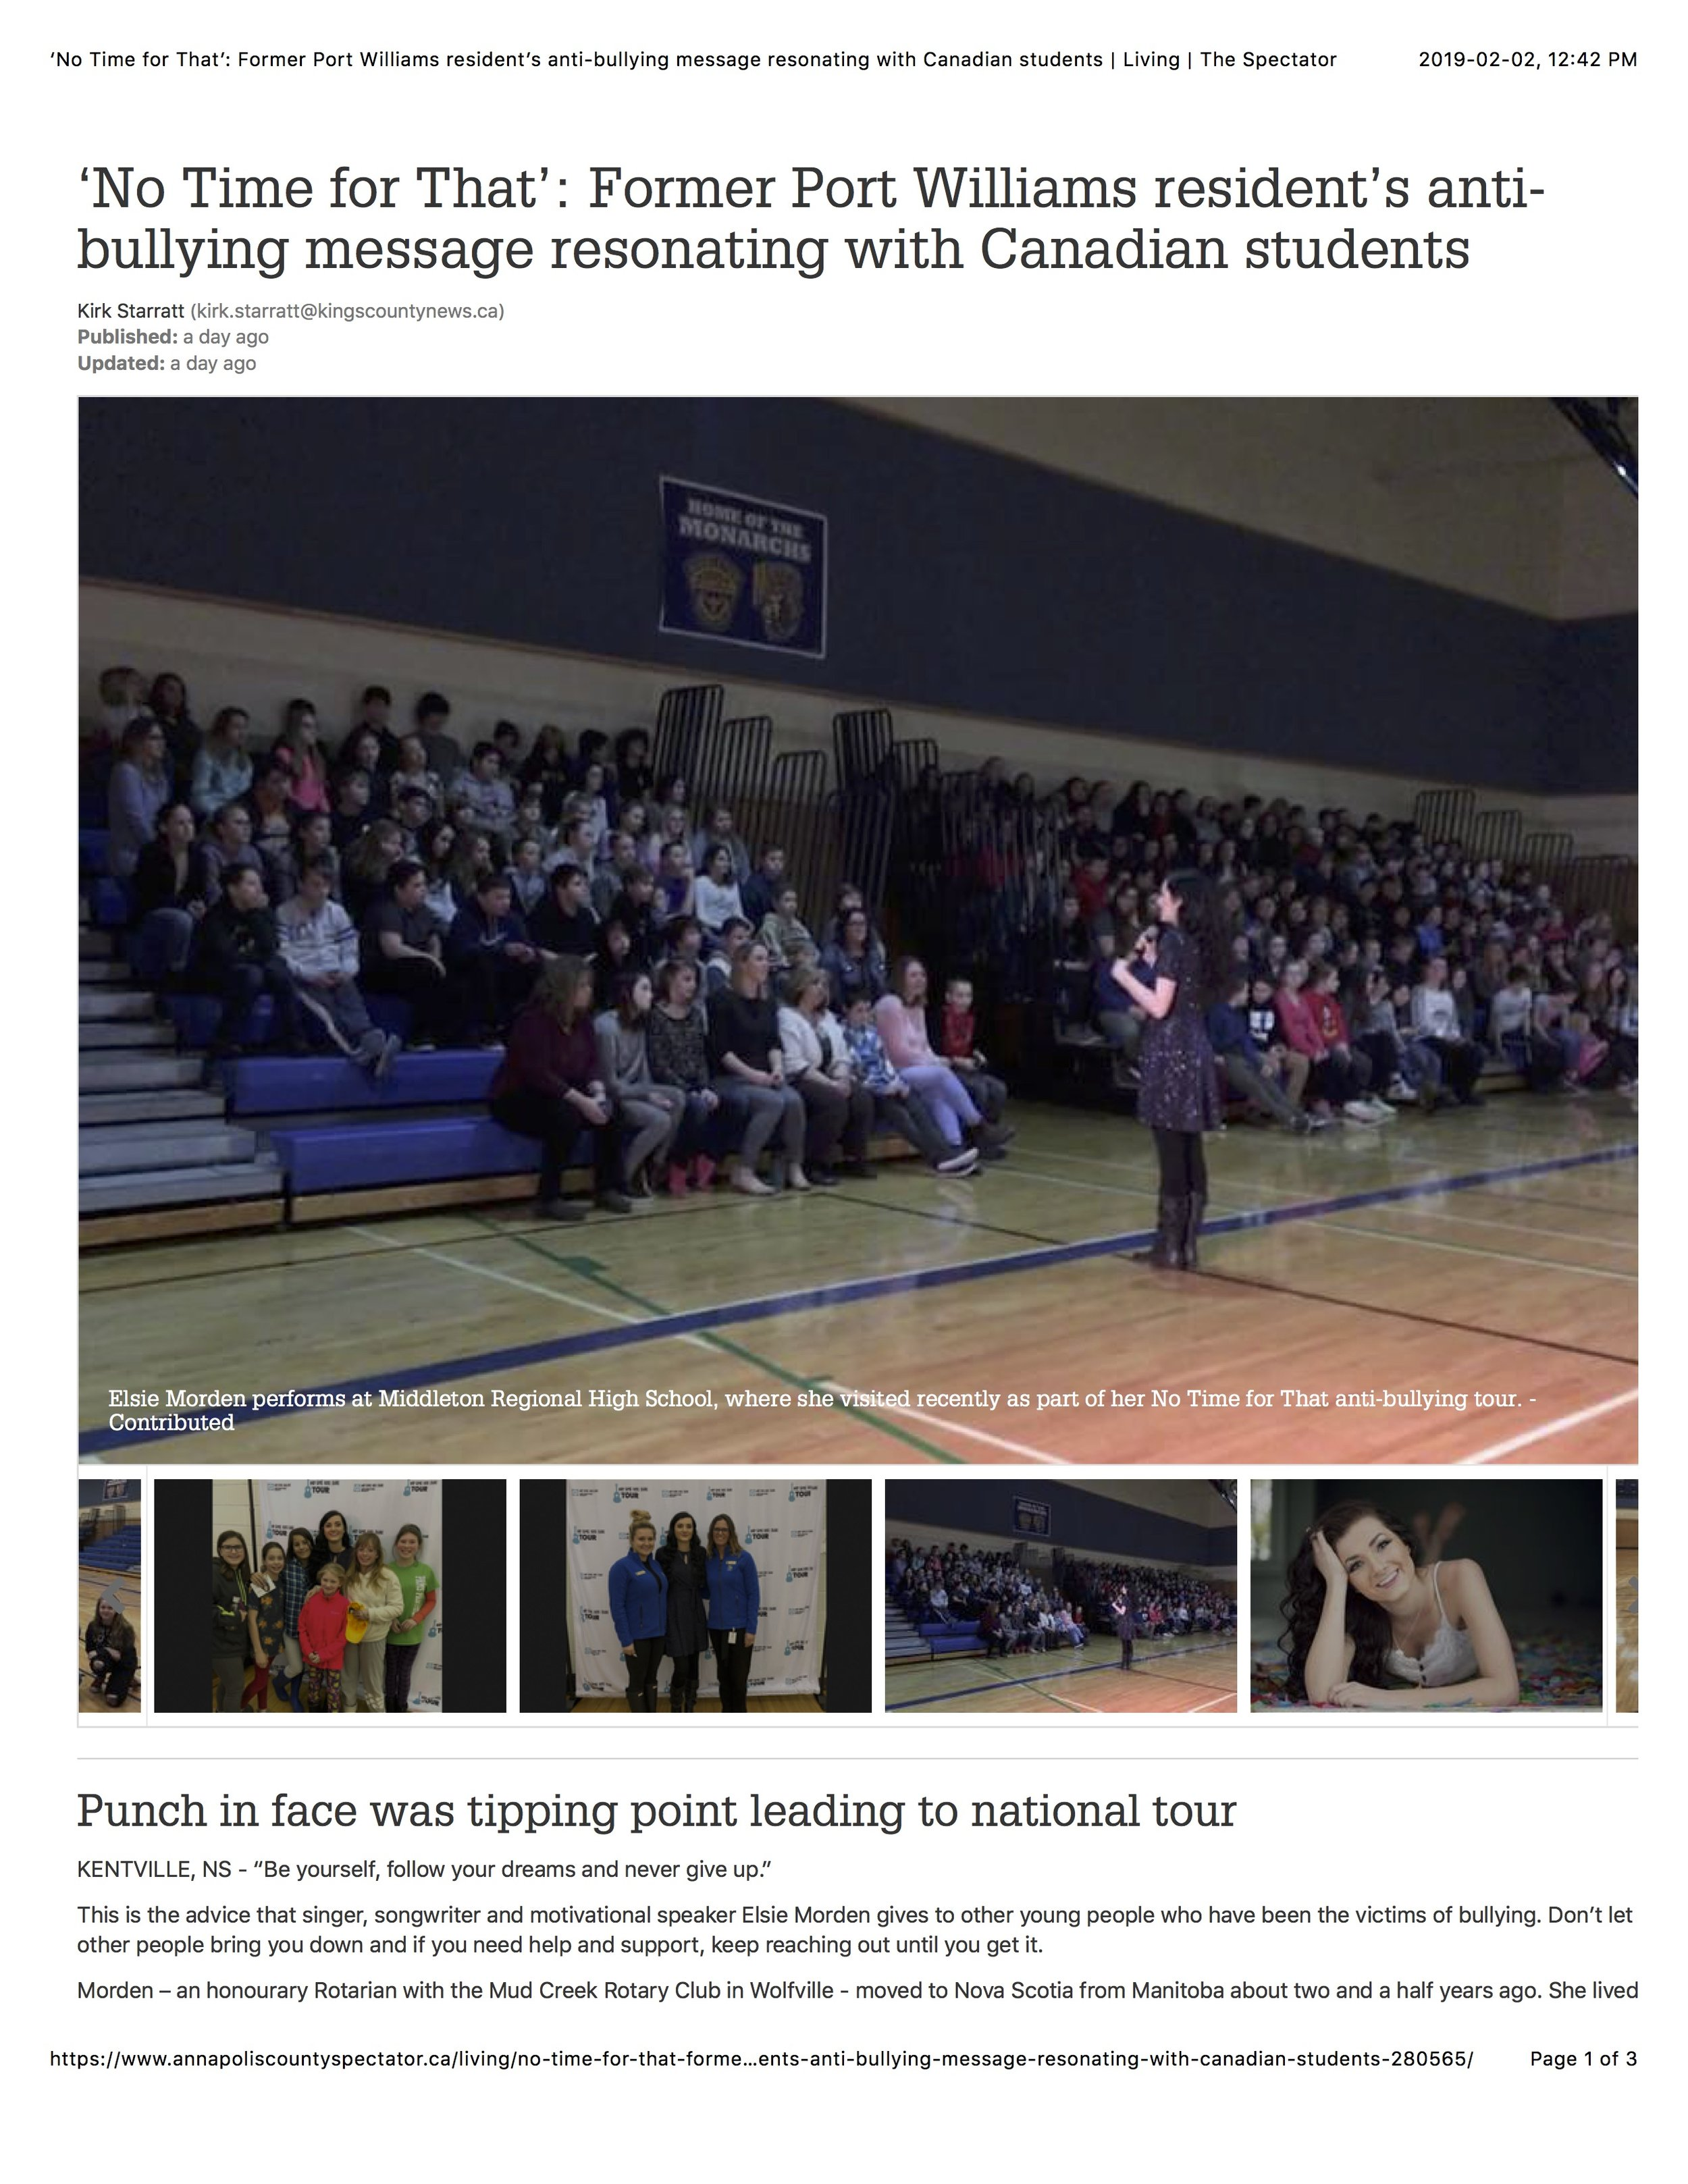 Page 1 'No Time for That': Former Port Williams resident's anti-bullying message resonating with Canadian students | Living | The Spectator.jpg